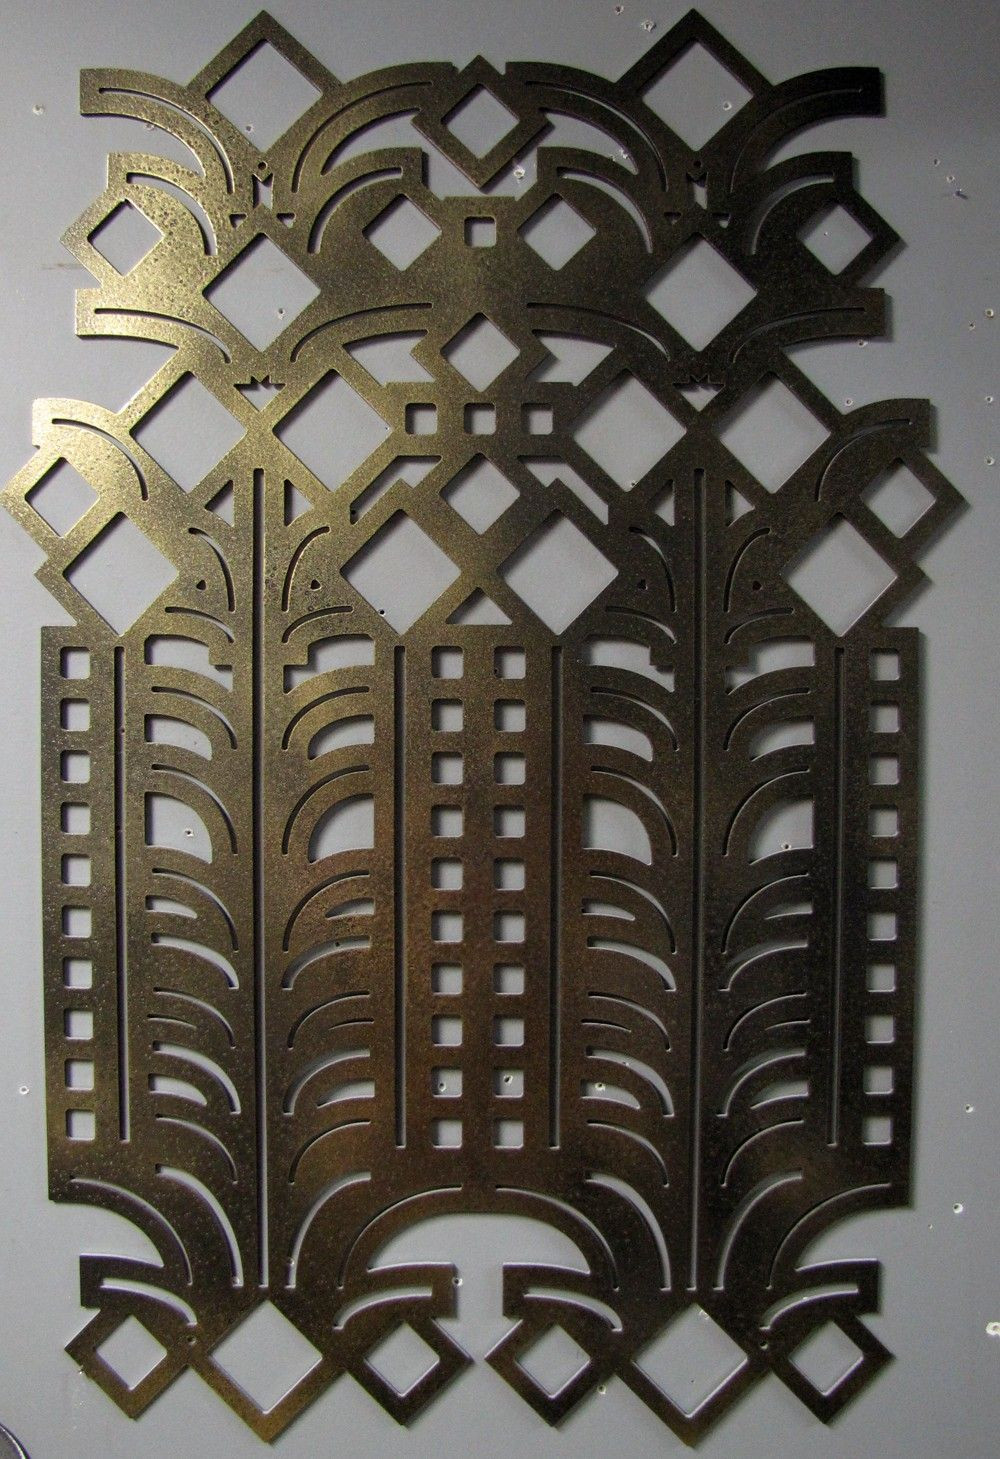 Best ideas about Art Deco Wall Art . Save or Pin deco metal wall art Research for possible future project Now.